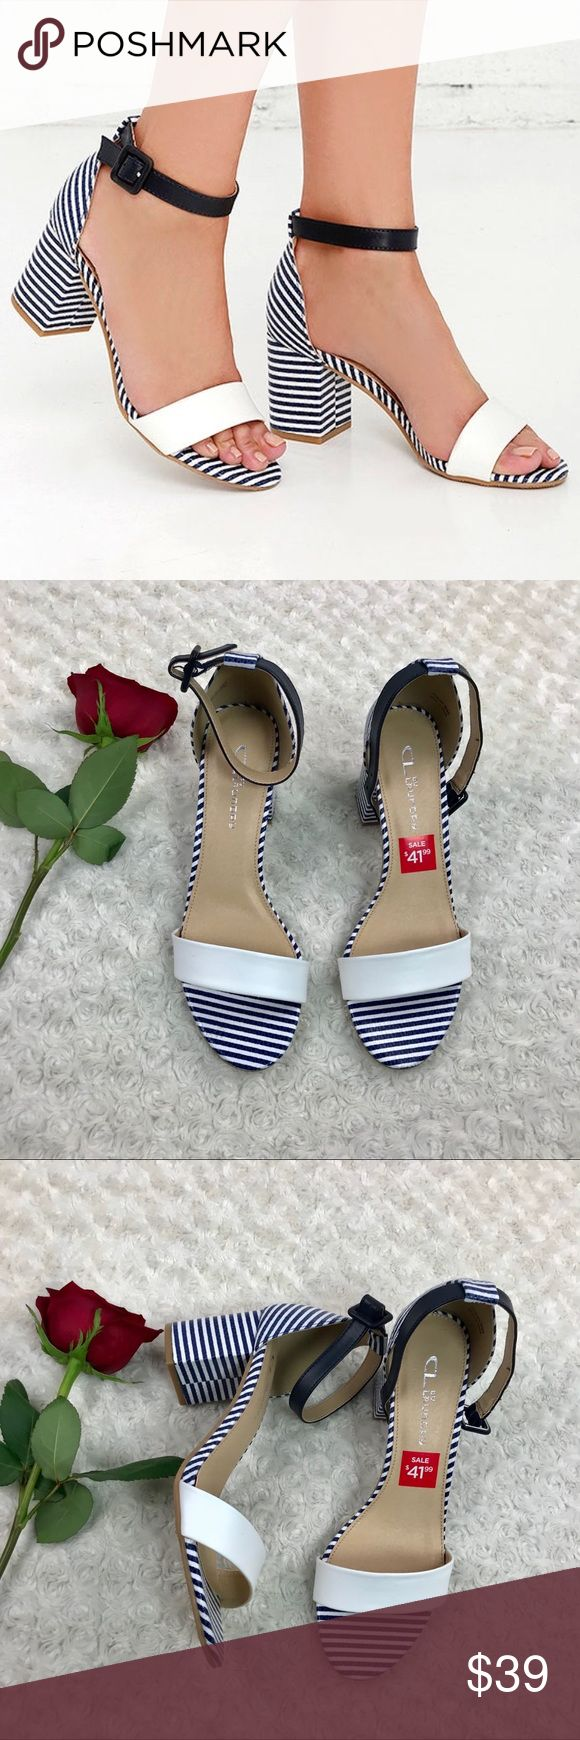 CL Laundry Jolina Jody Striped nautical sandals Condition: New without the box  The Fit is awesome Heel high 3''  Smoke & Pet Free Home Ships within one day of payments Please feel free to ask if you have any questions. CL Laundry Shoes Sandals